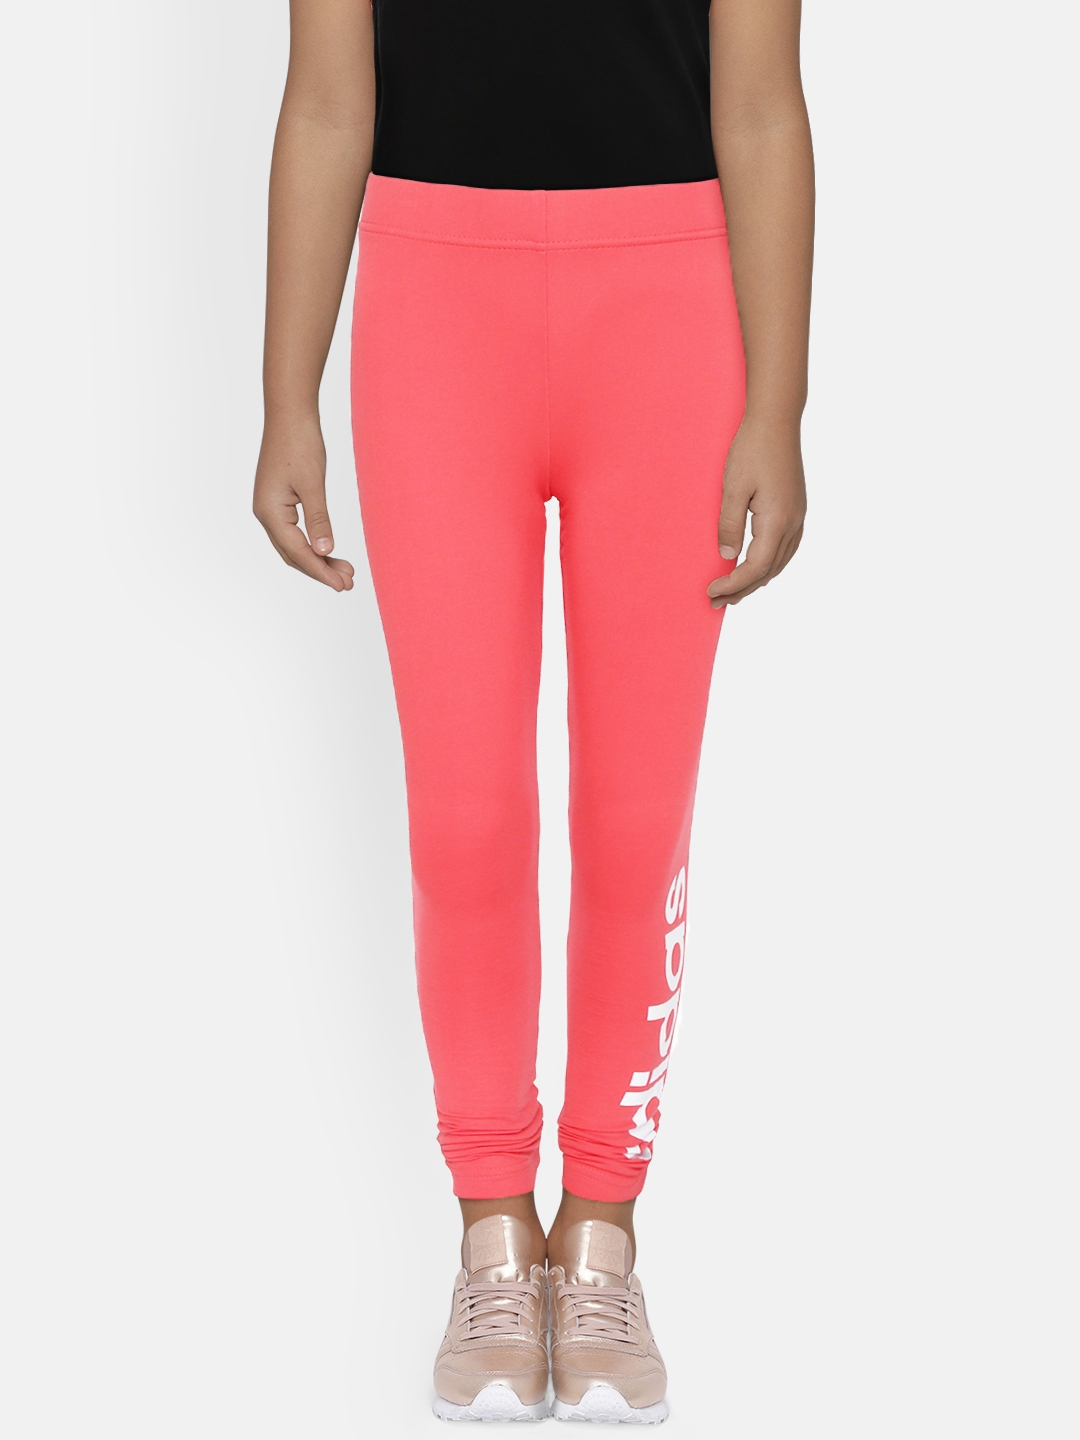 ADIDAS Girls Coral Pink Solid Essentials Linear Tights